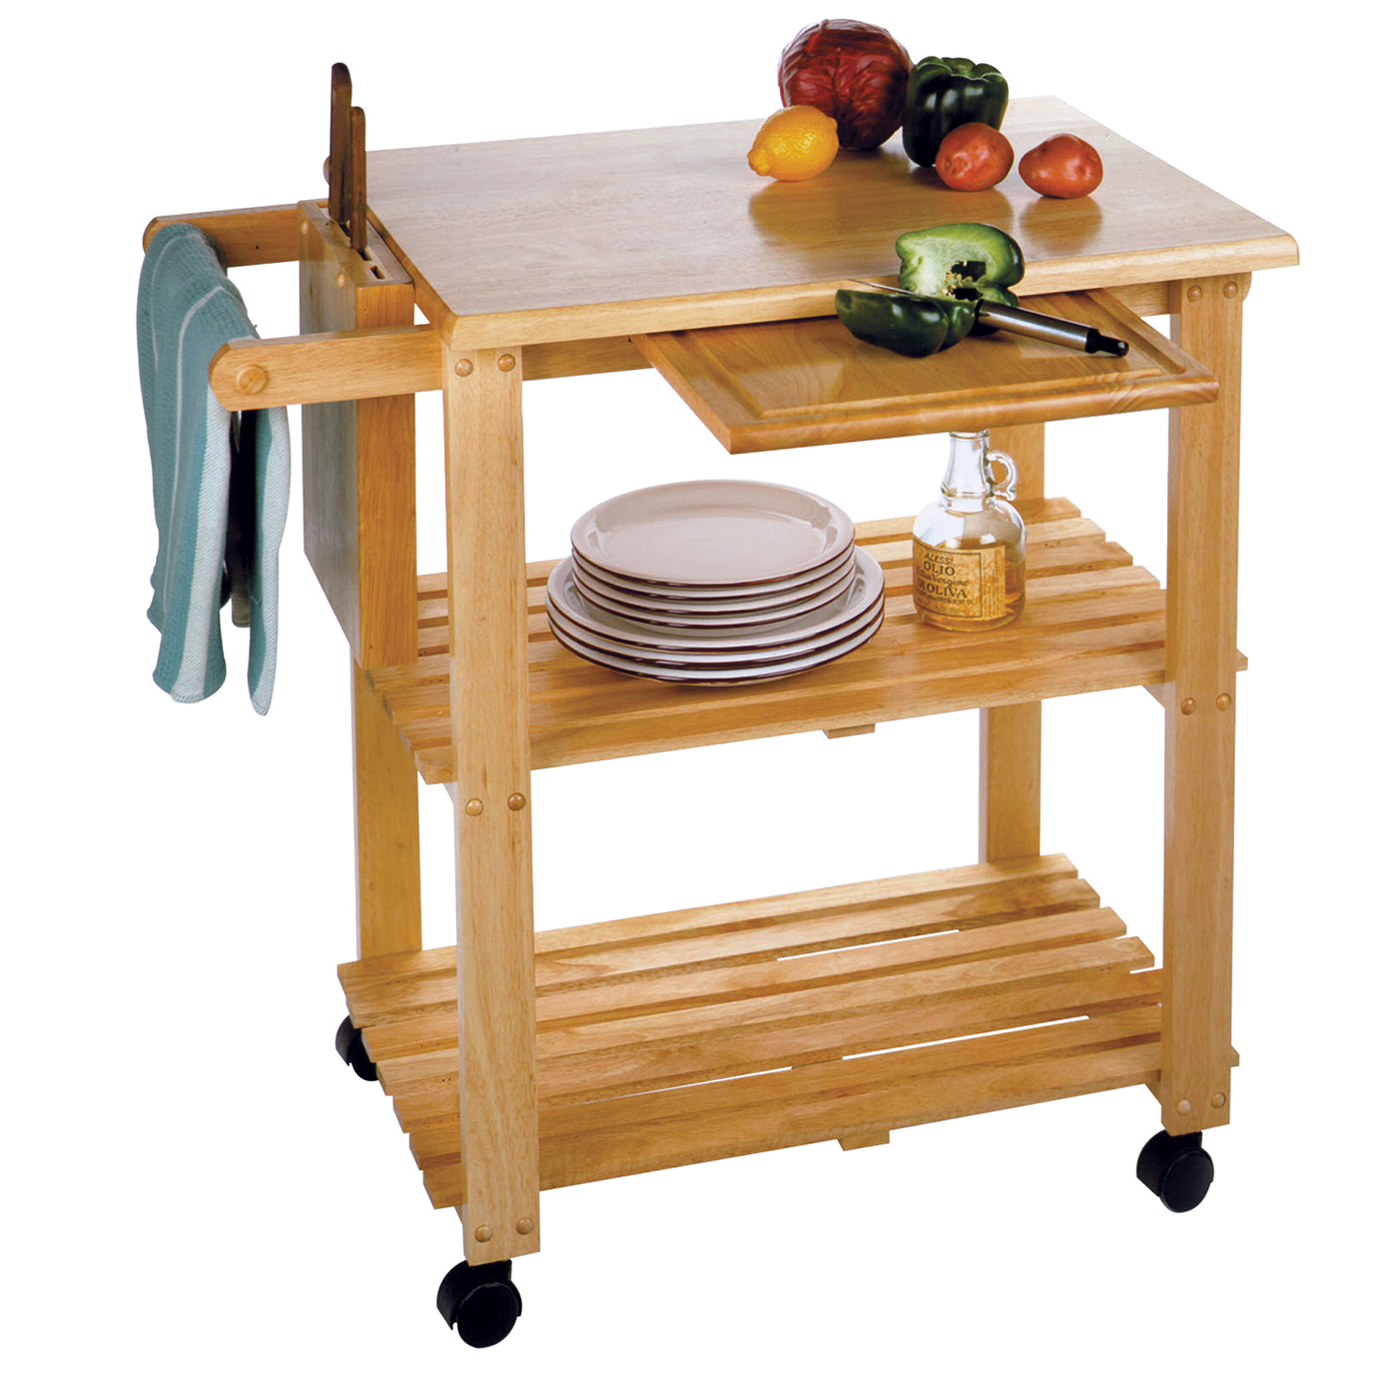 Superbe Winsome Wood Mario Utility Kitchen Cart, Natural Finish